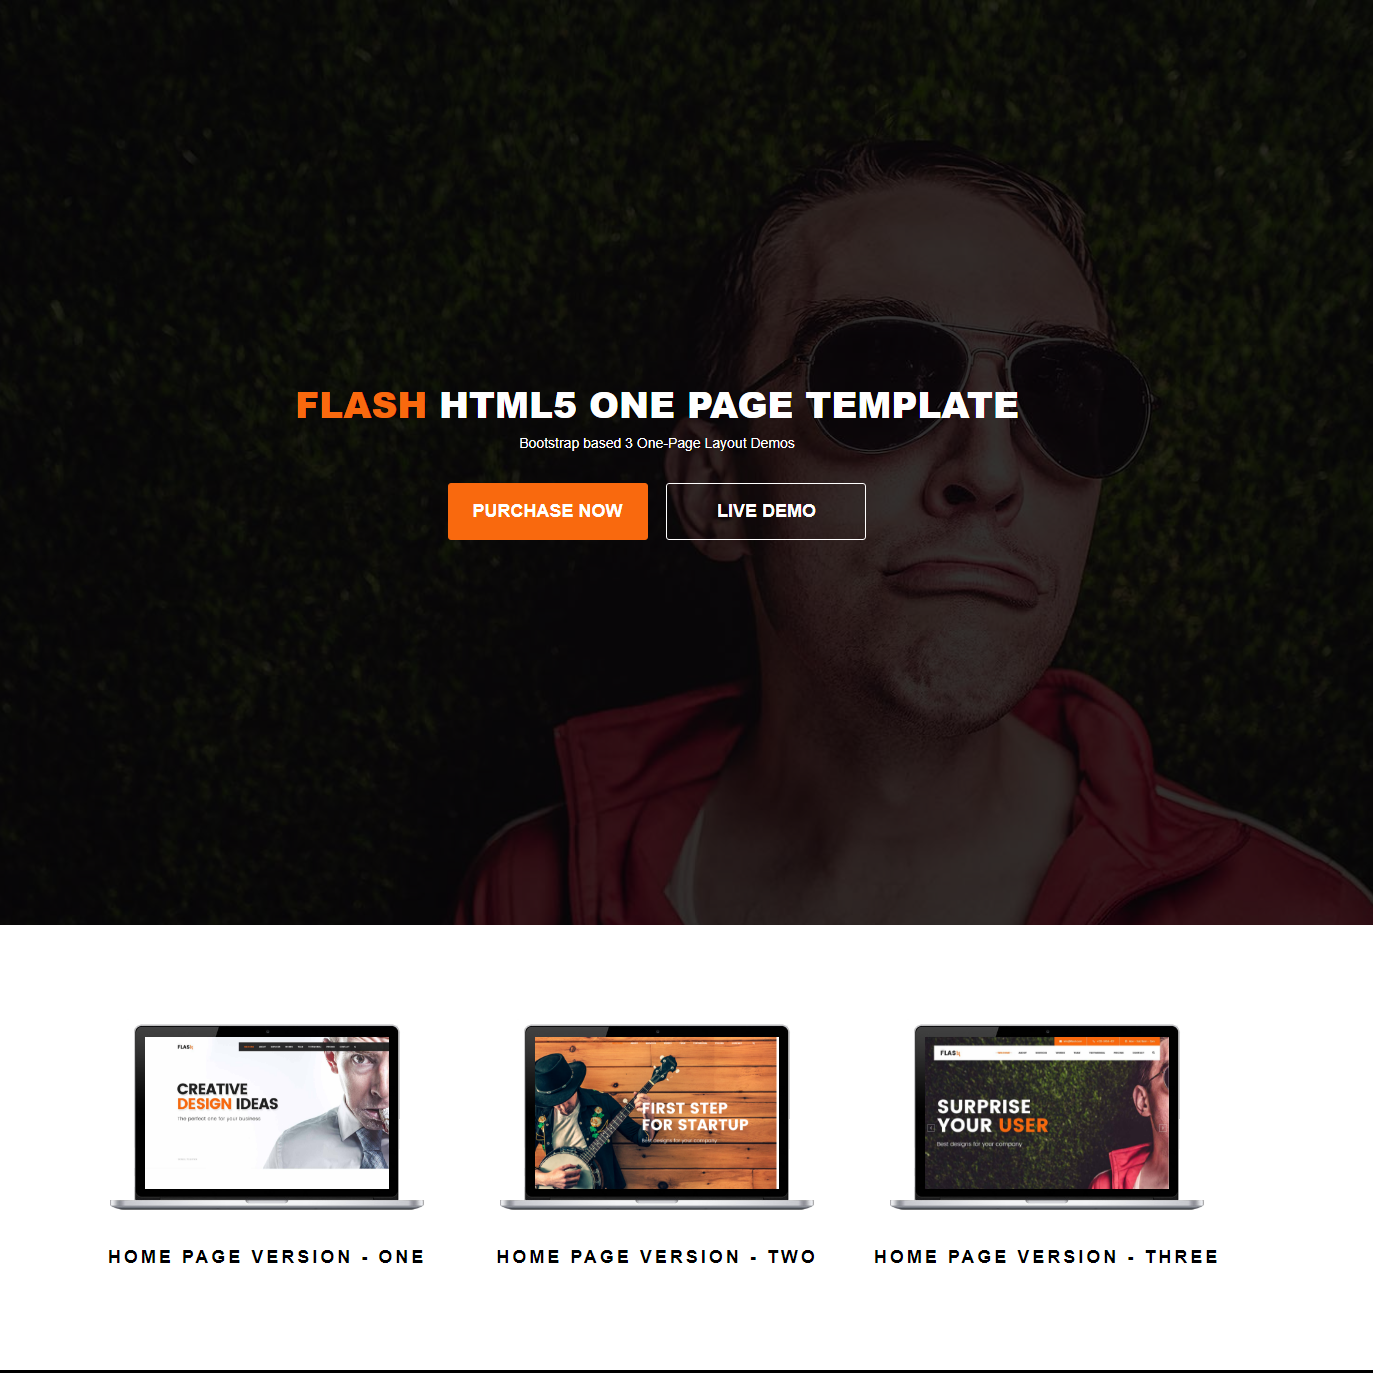 HTML5 Bootstrap Flash Templates